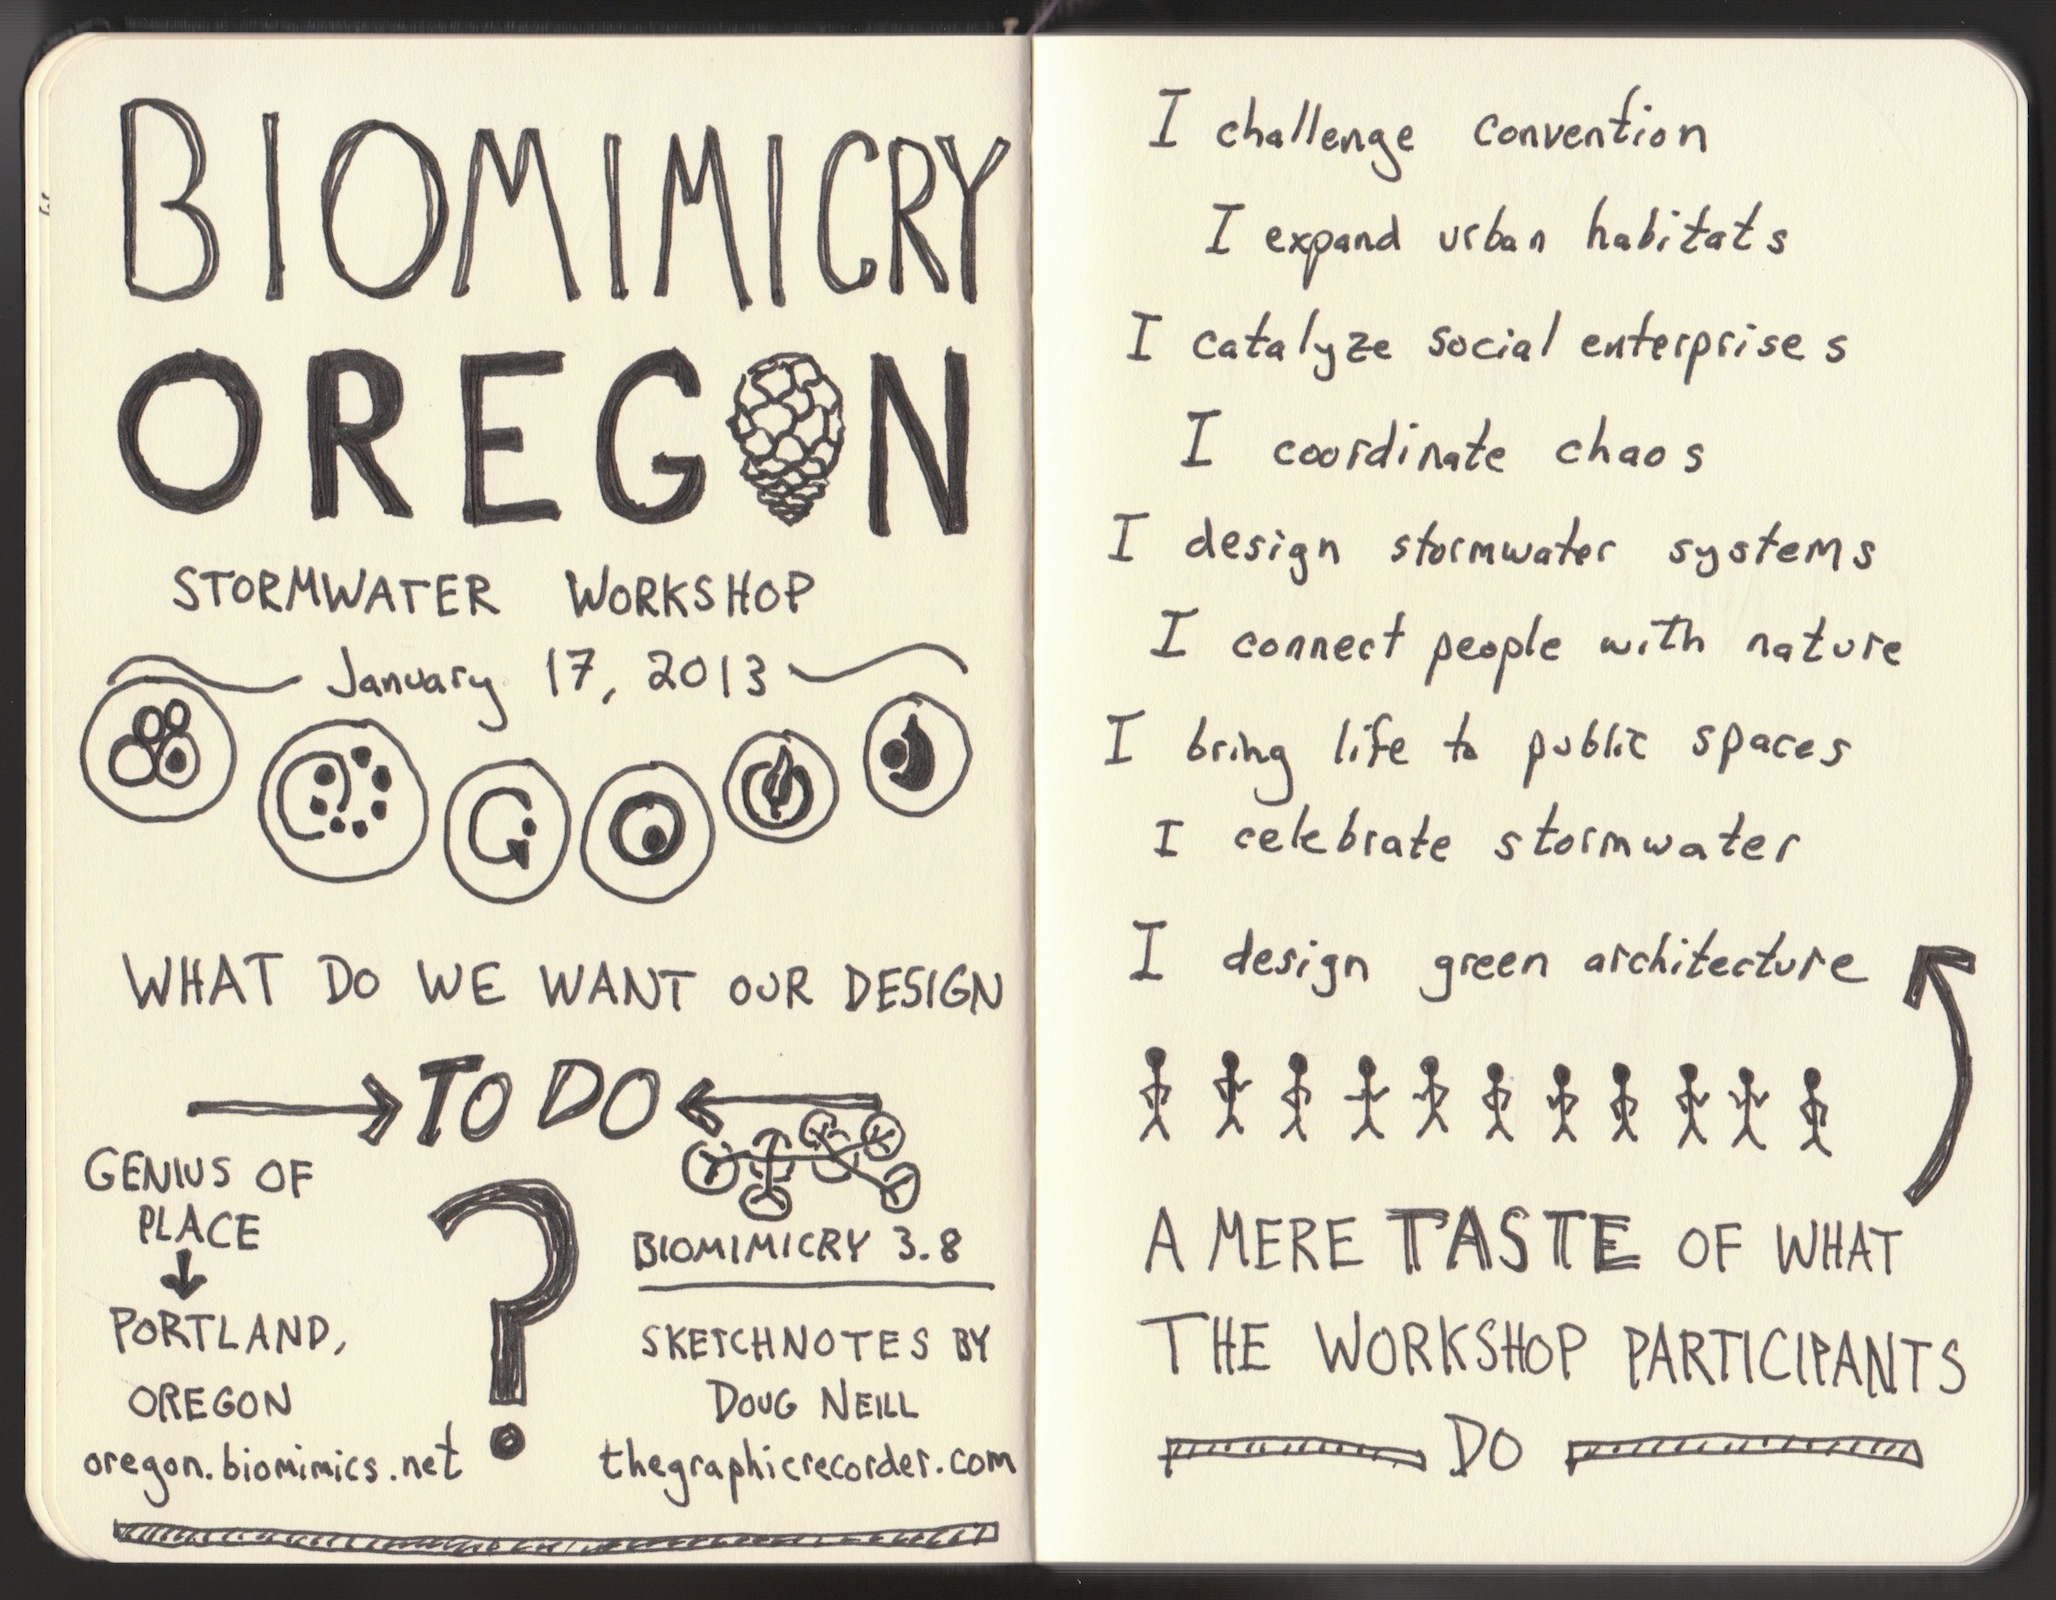 Biomimicry Oregon Genius of Place Stormwater Workshop (1) - The Graphic Recorder - Doug Neill Sketchnotes